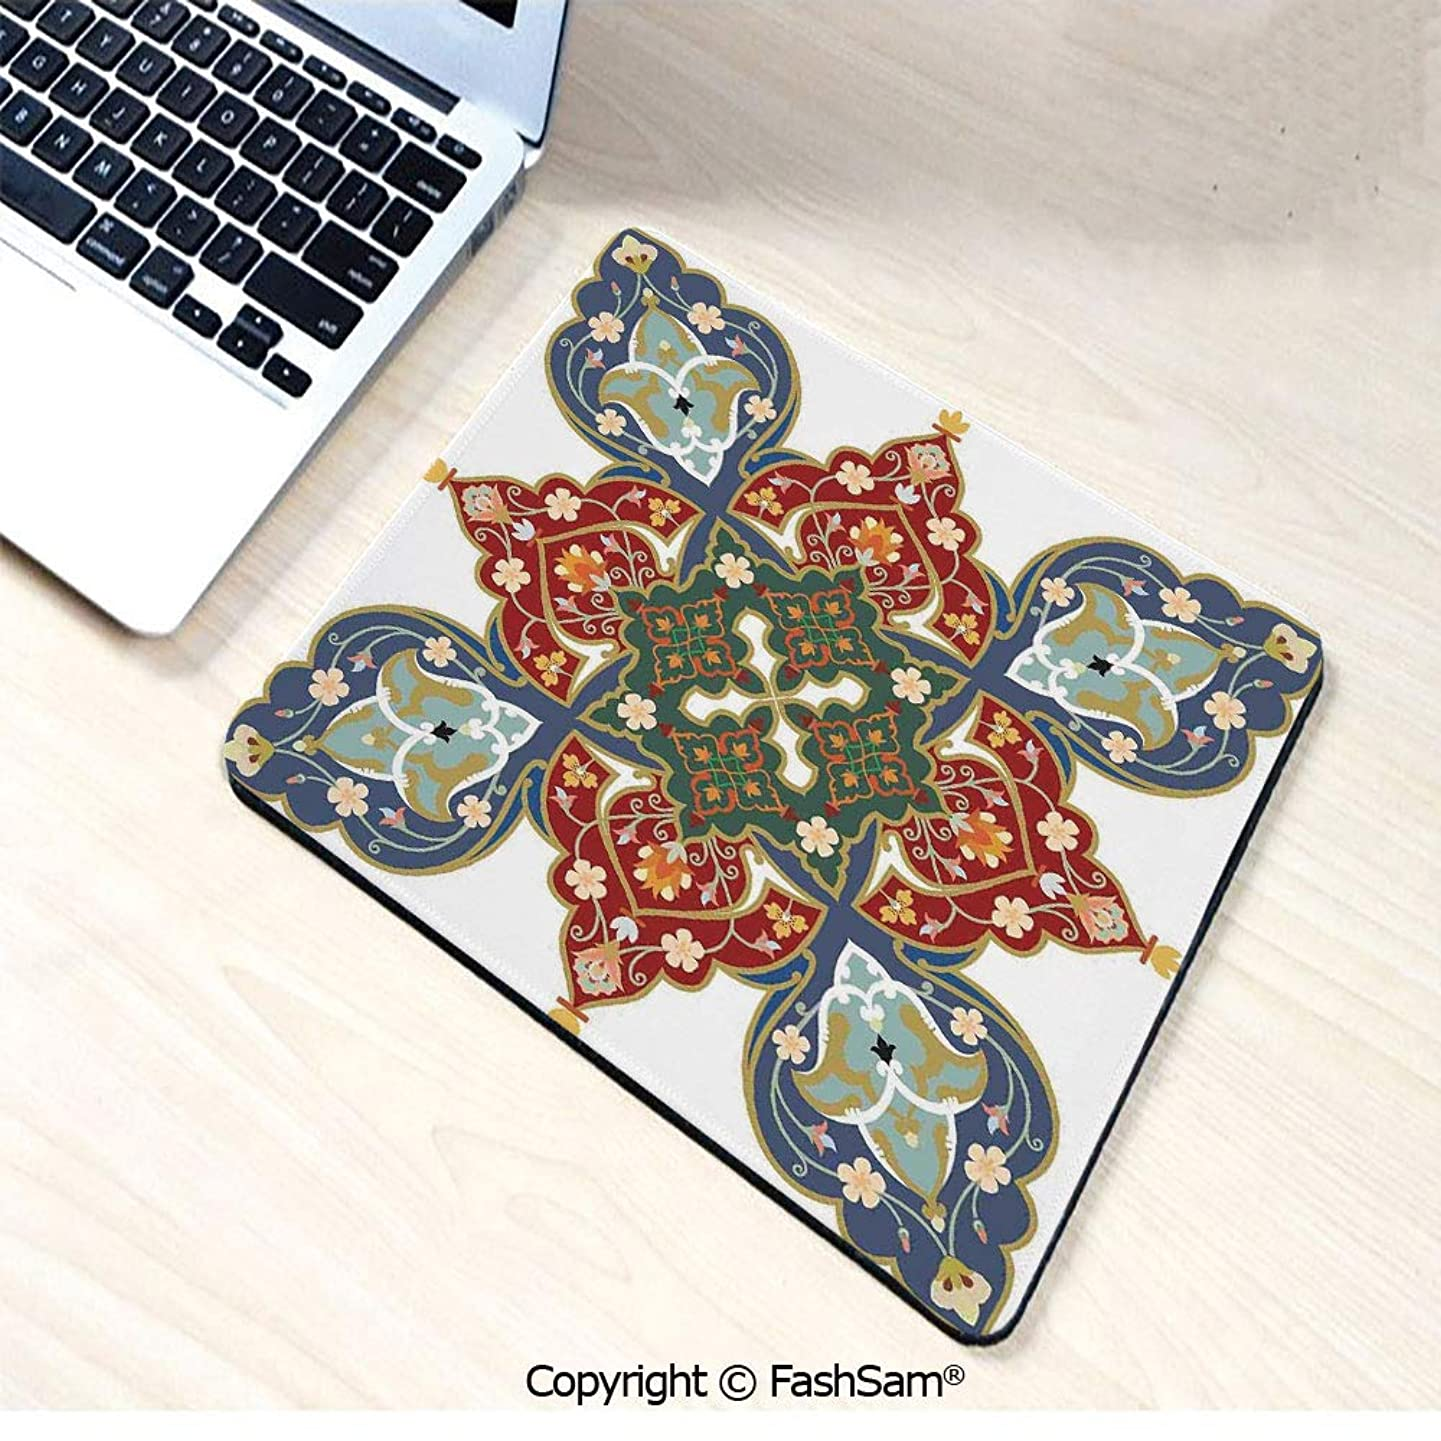 Desk Mat Mouse Pad Turkish Ottoman Arabic Eastern Decor Flowers Moroccan Image for Office(W9.85xL11.8)